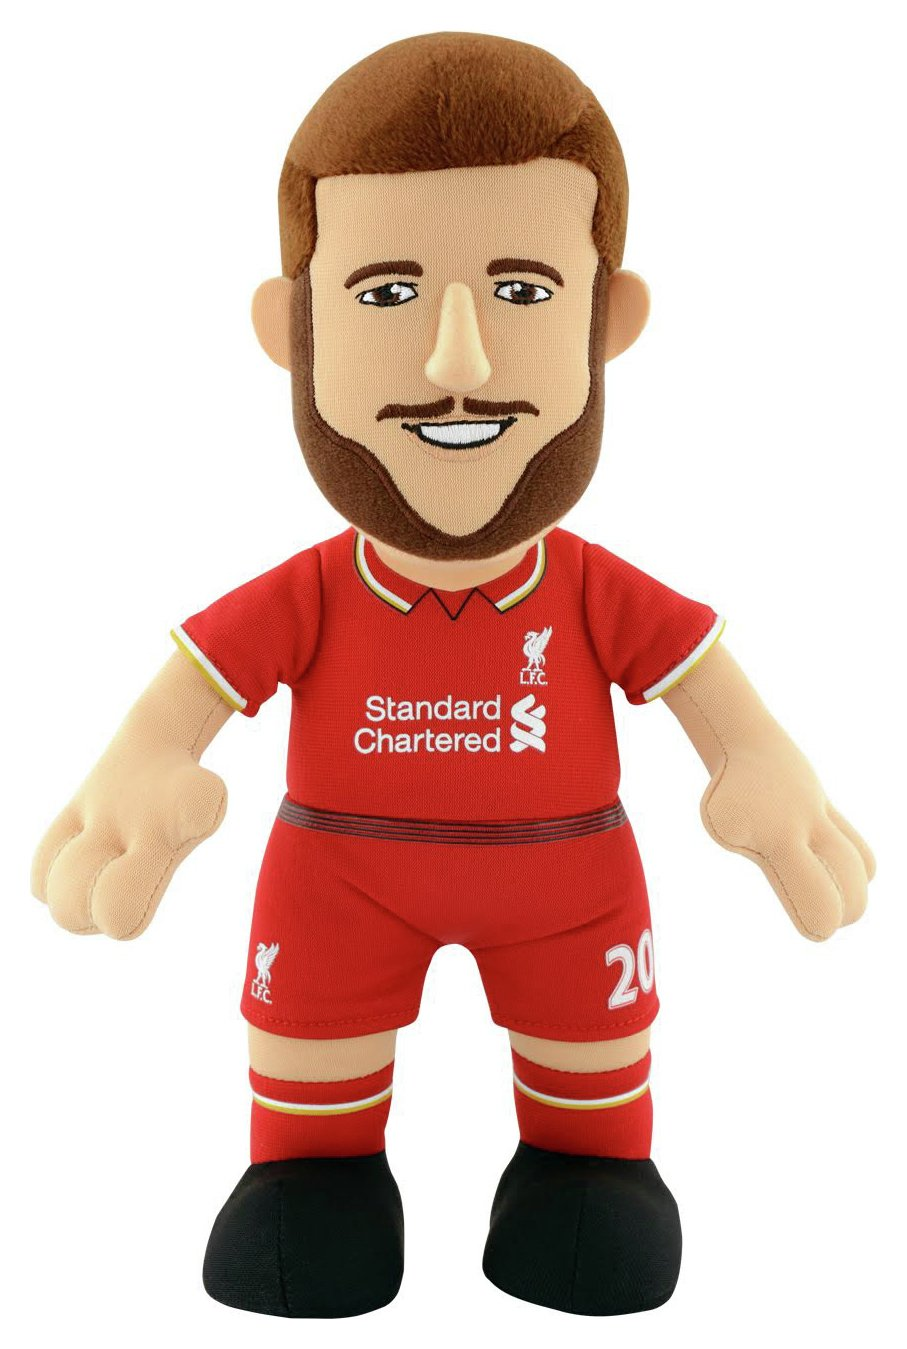 Image of Liverpool FC - Lallana - Creature - Plush Toy